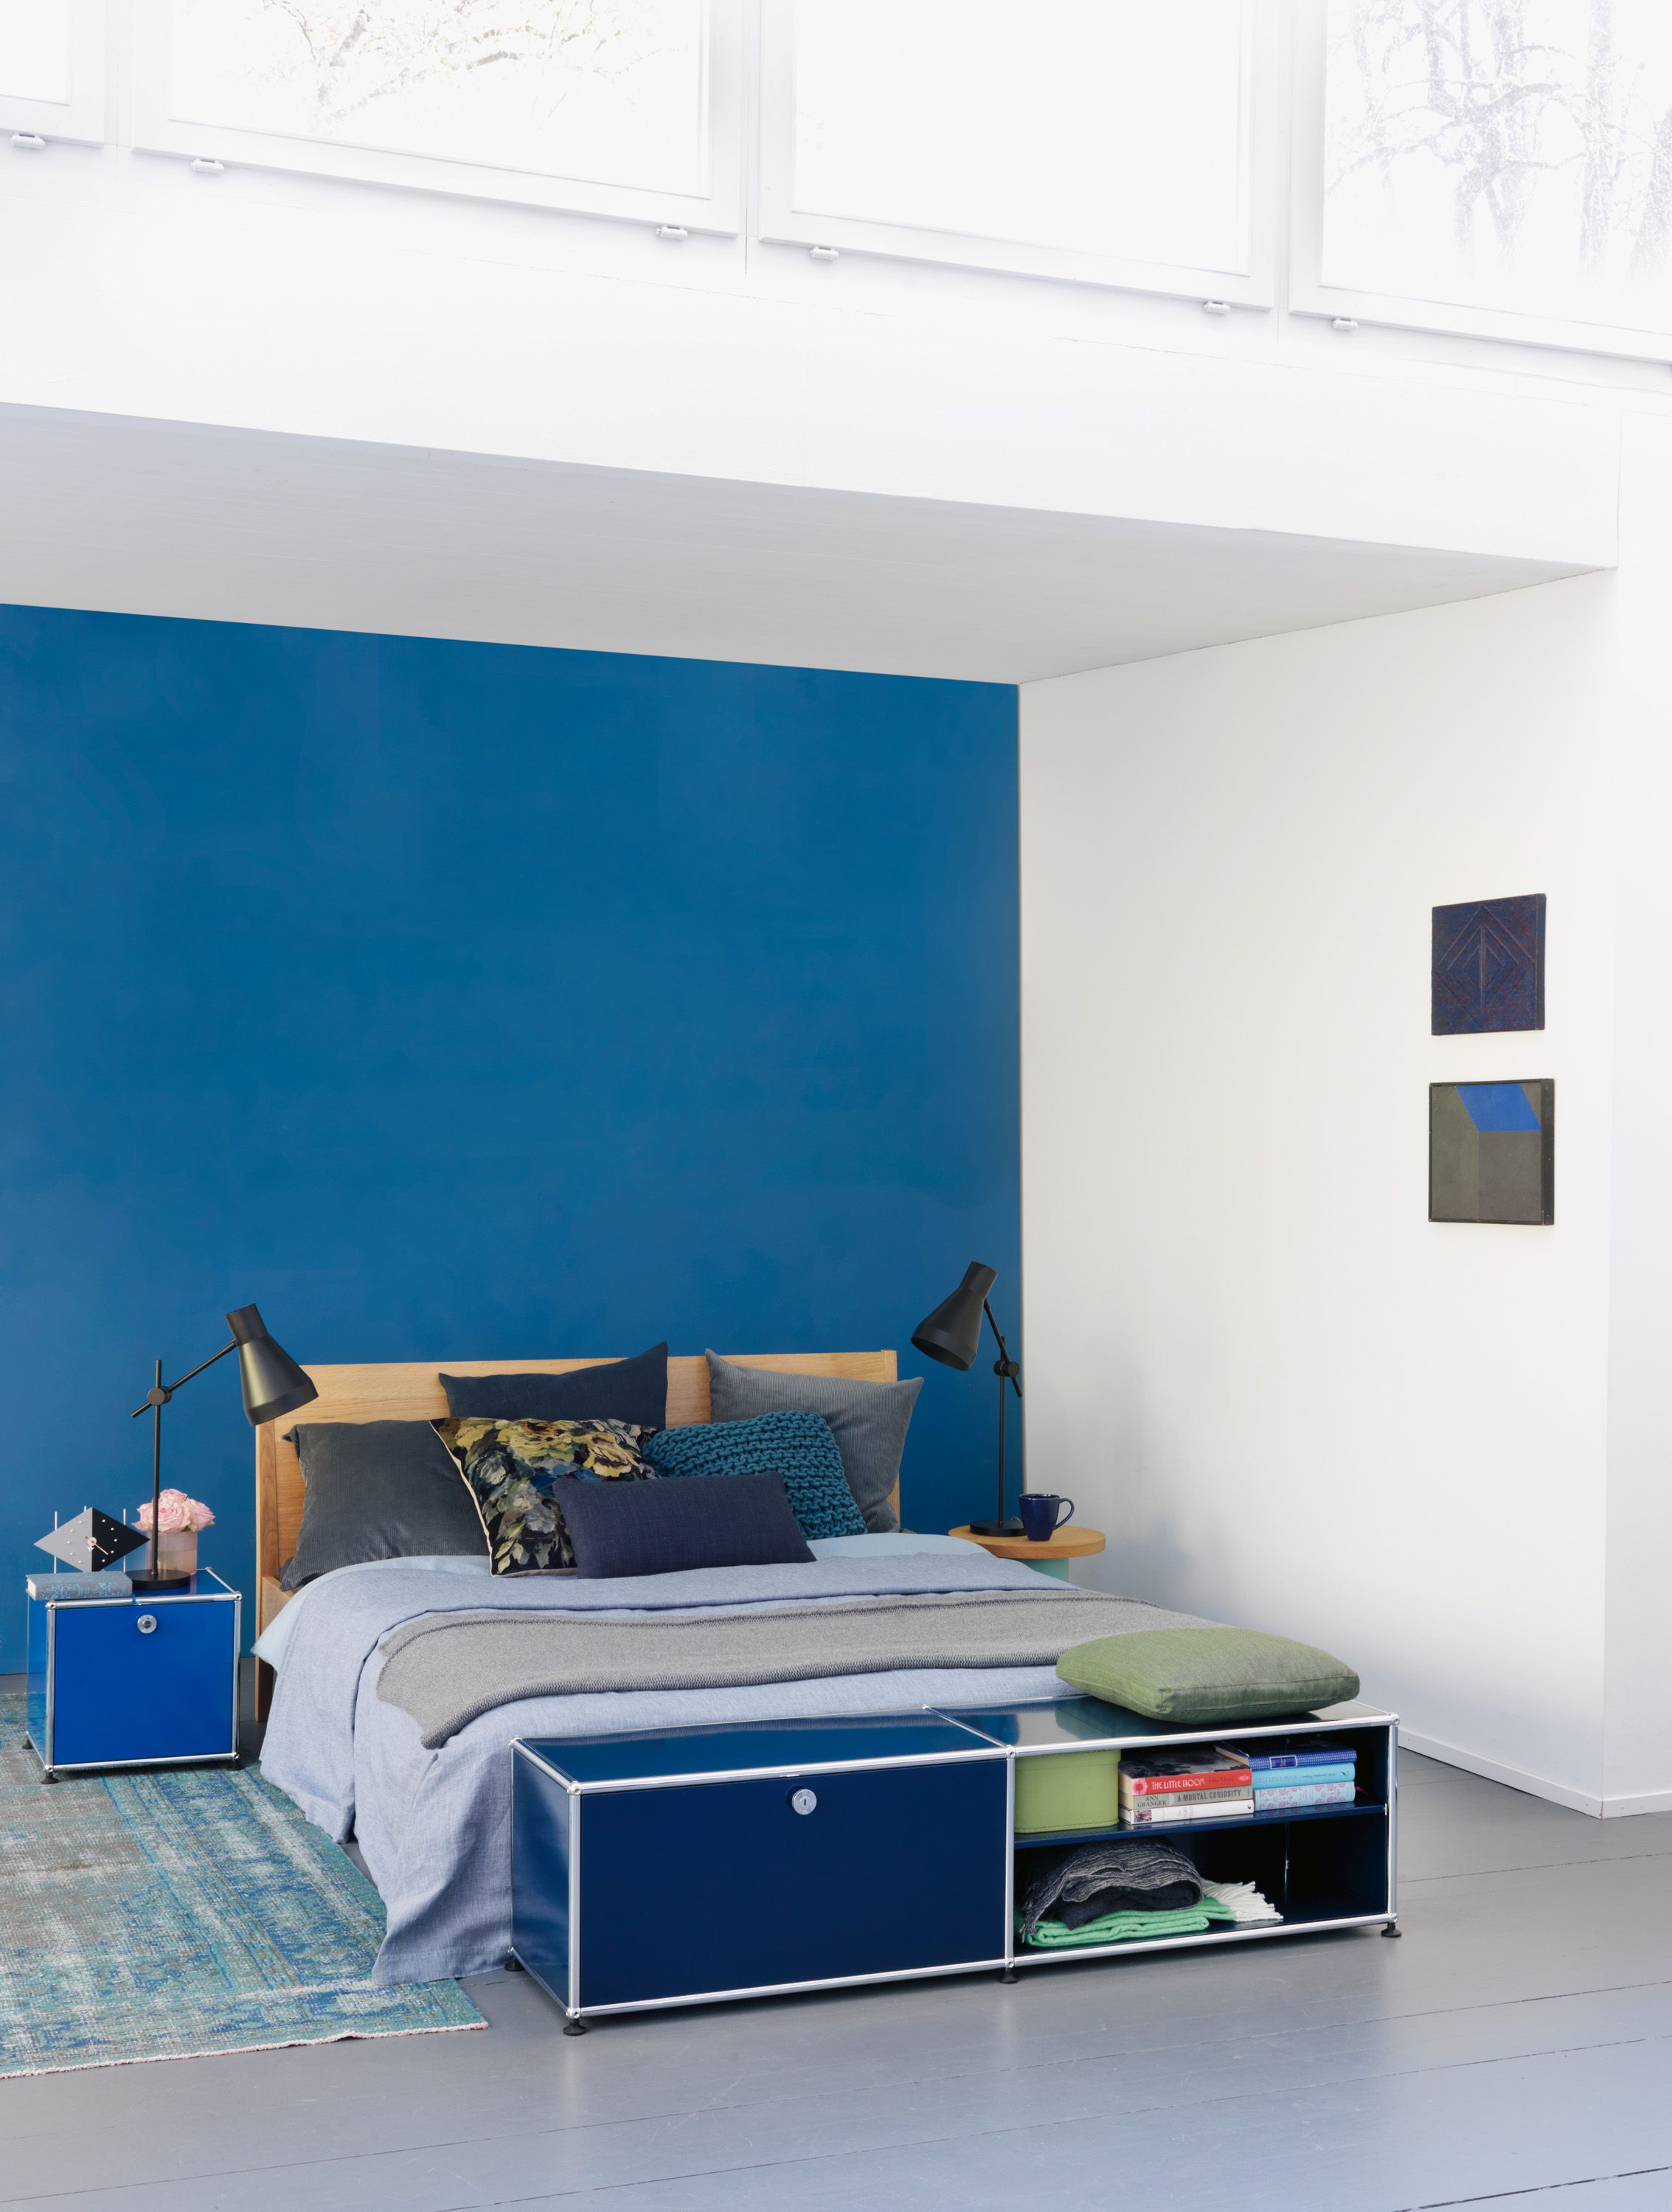 Usm Regale Inspirations Déco Mobilier Usm Haller Coloris Bleu Bedroom